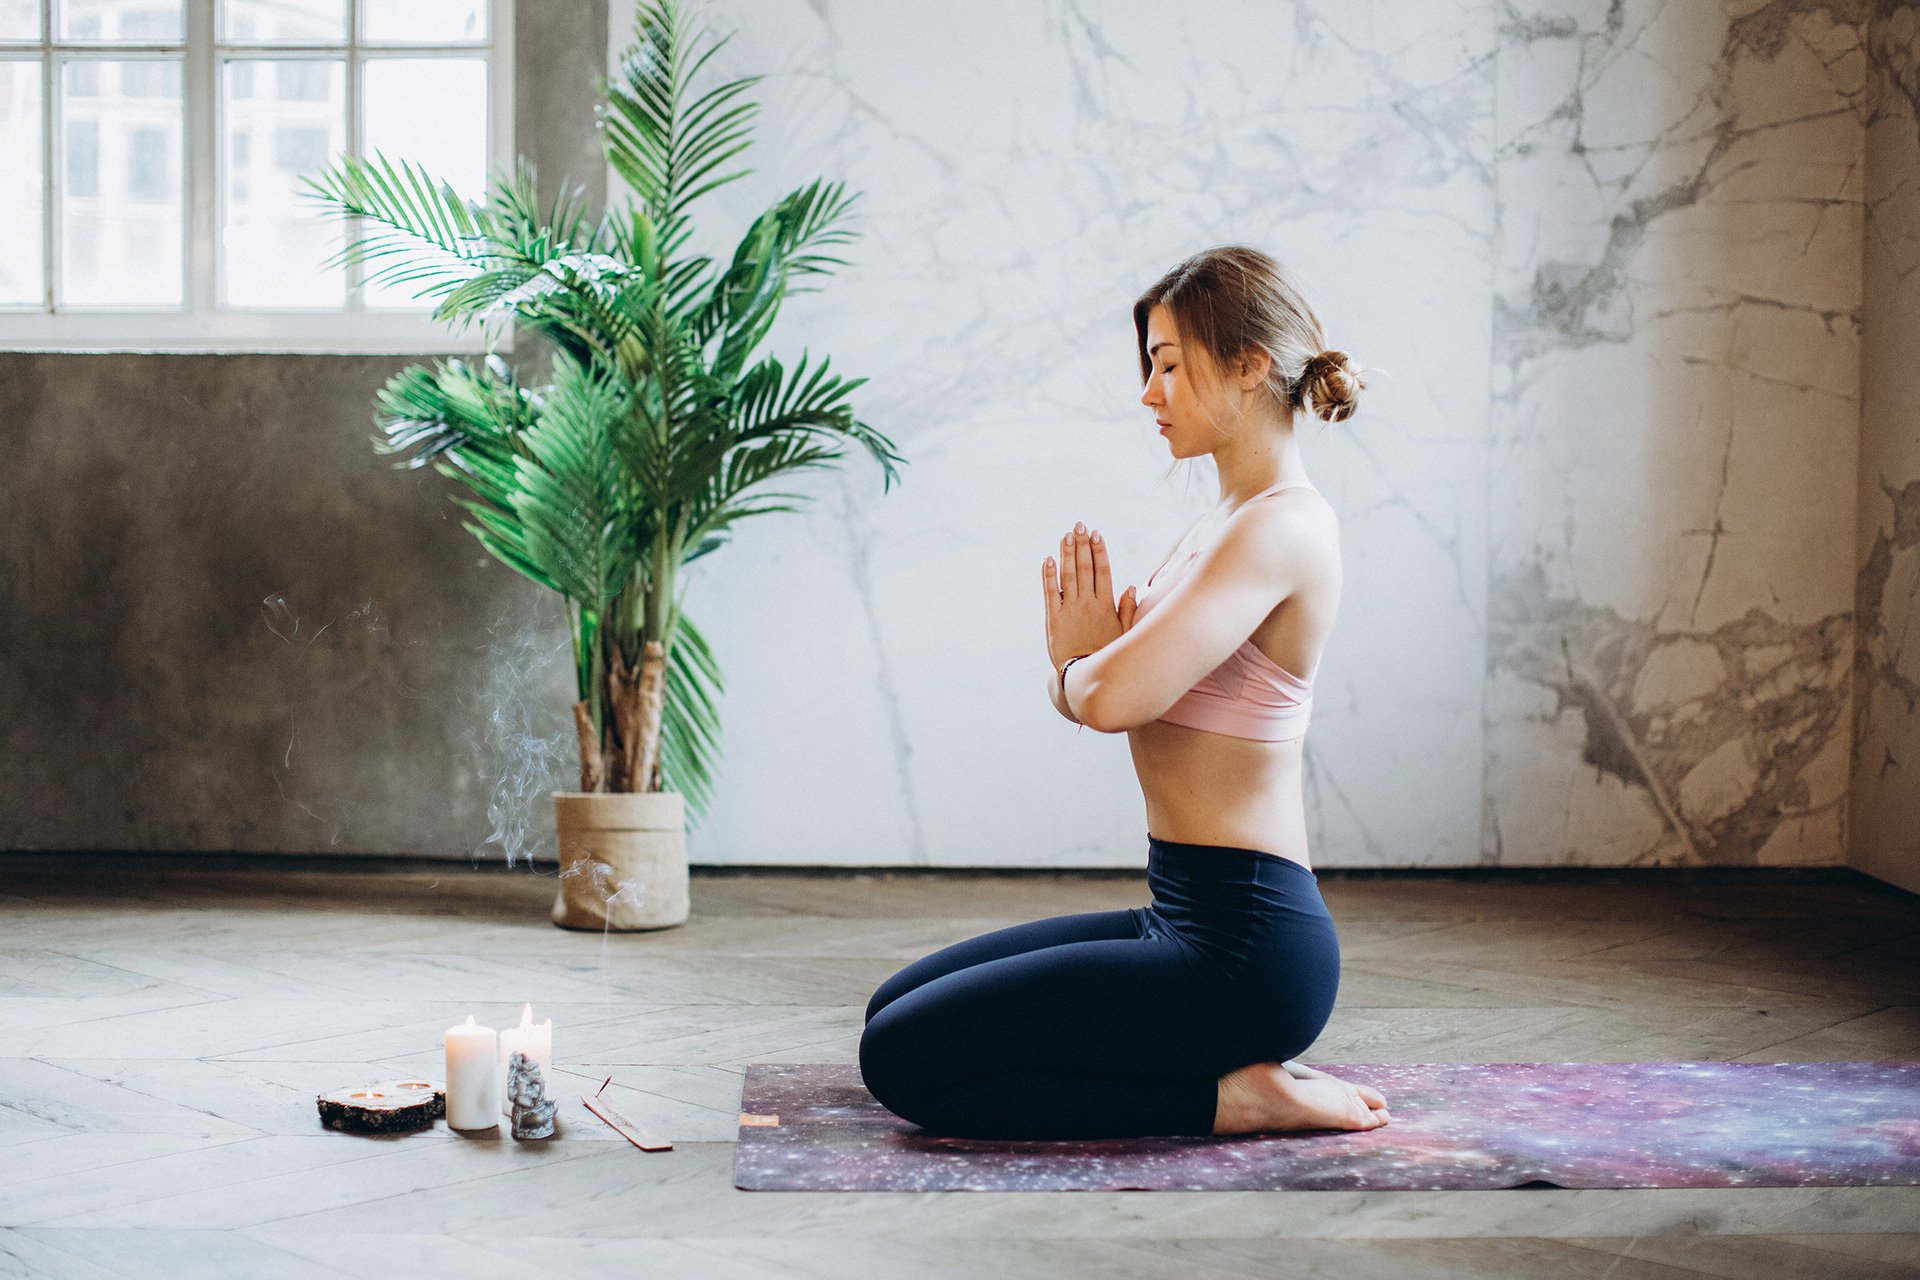 Wellness Marketing: Getting Your Clients Healthy And Happy